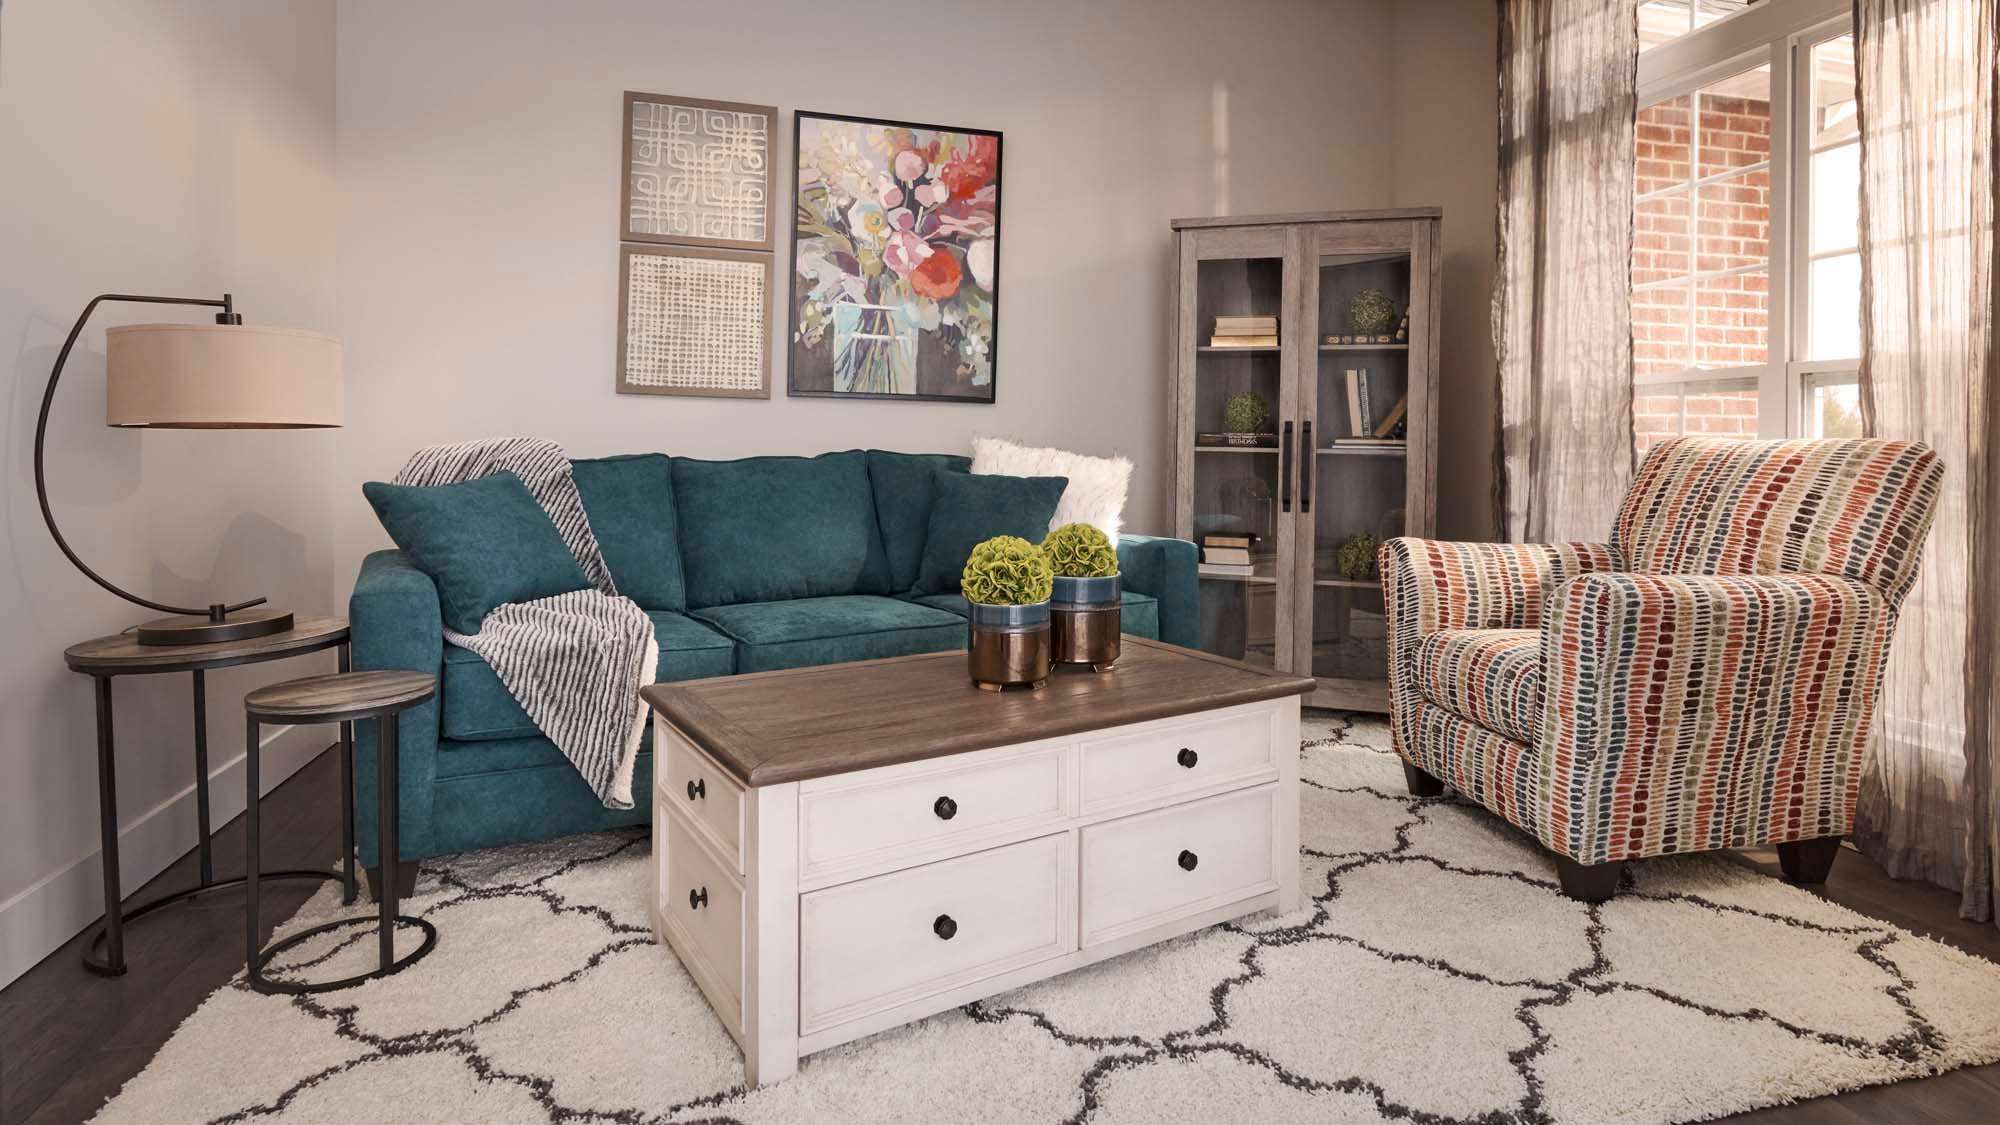 white rug with a torquise soft and multi colored chair and a white wooden coffee table